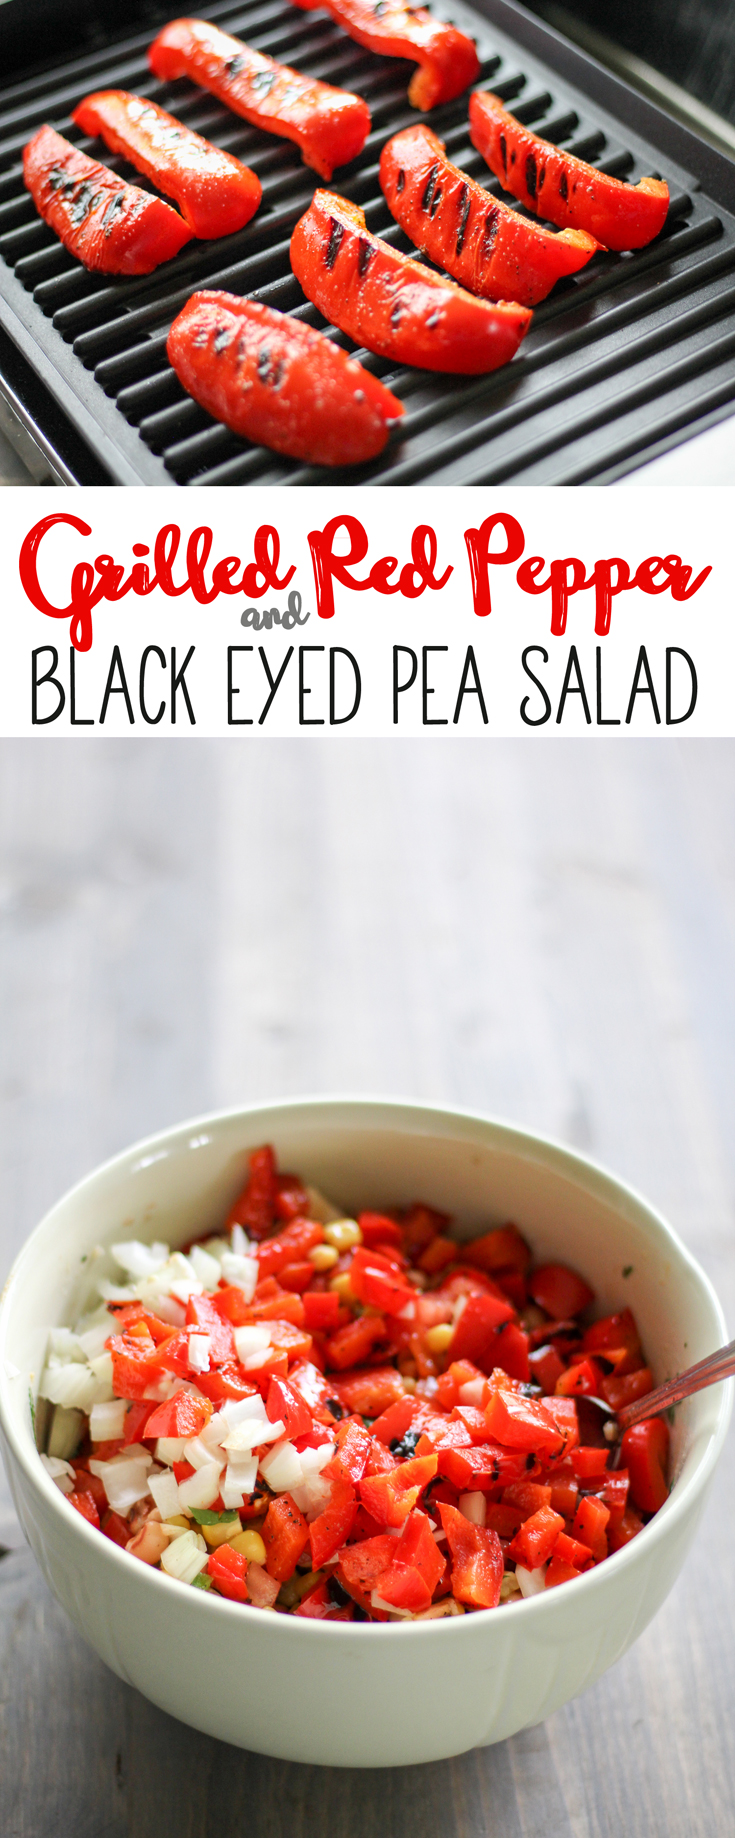 Grilled Red Pepper Black Eyed Pea is healthy recipe big on flavor.  Grill like it is Summer! #GrillIt